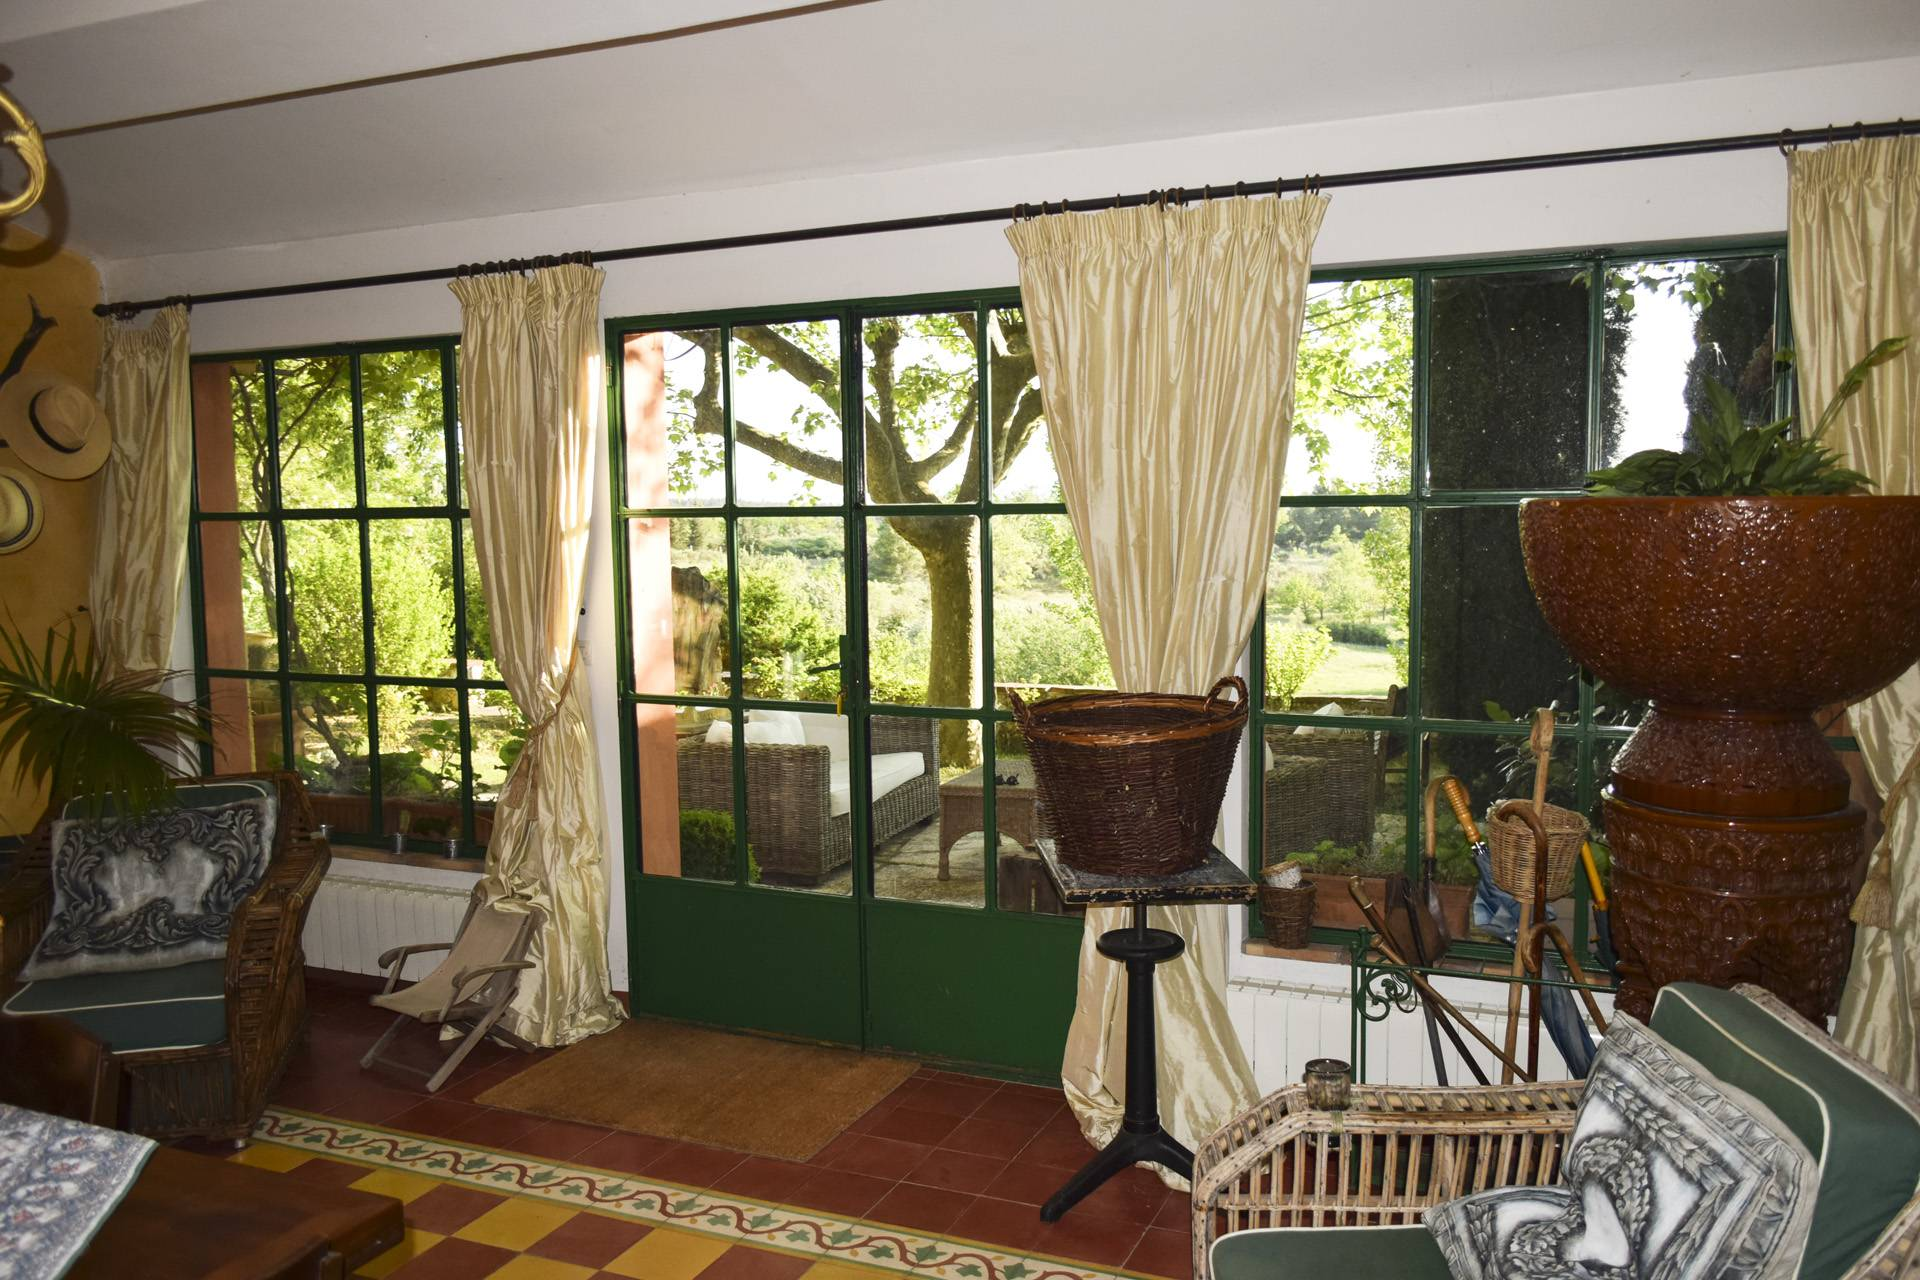 winter garden 2 renovated country house on 8 ha, swimming pool, caretaker's house, aups var, provence